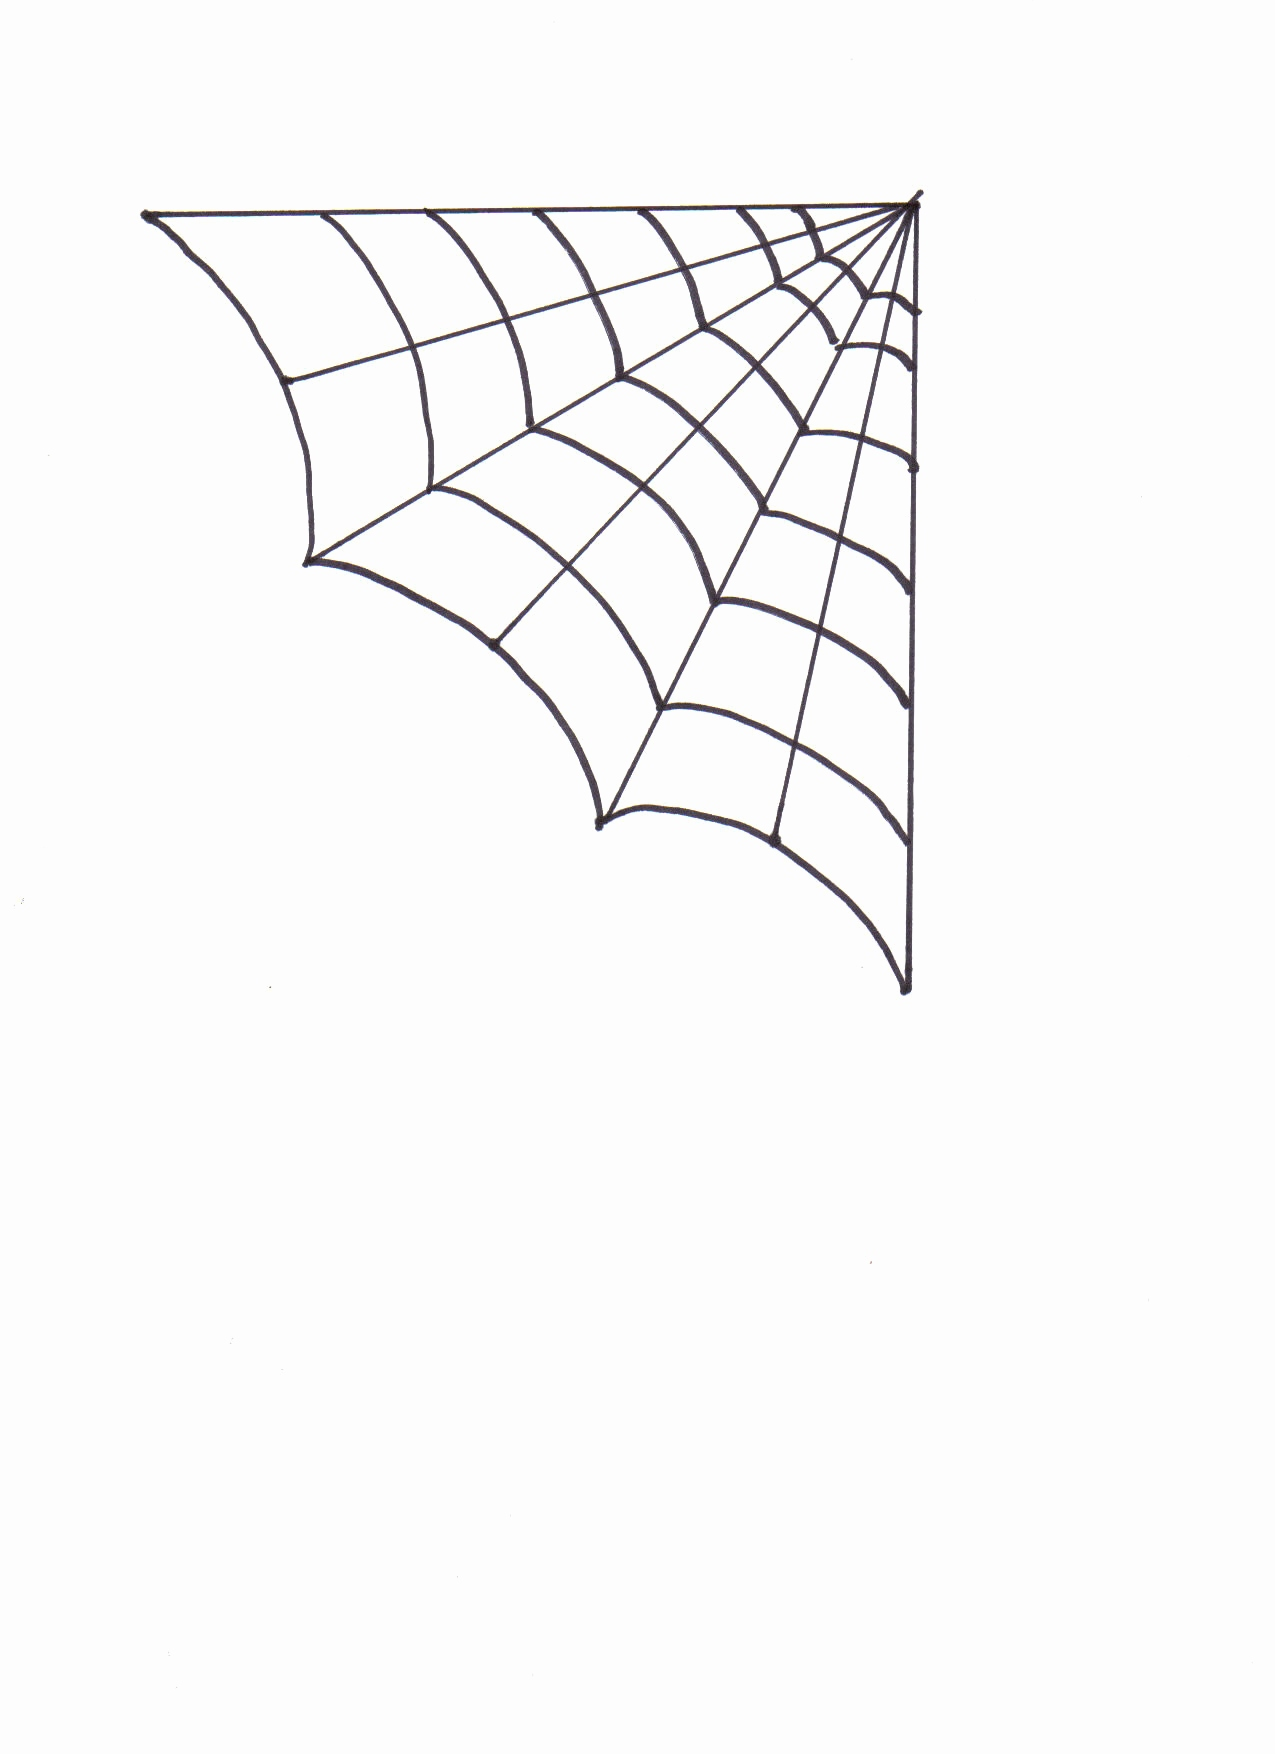 1275x1754 Spider Web Coloring Pages Elegant Spider Web Drawing